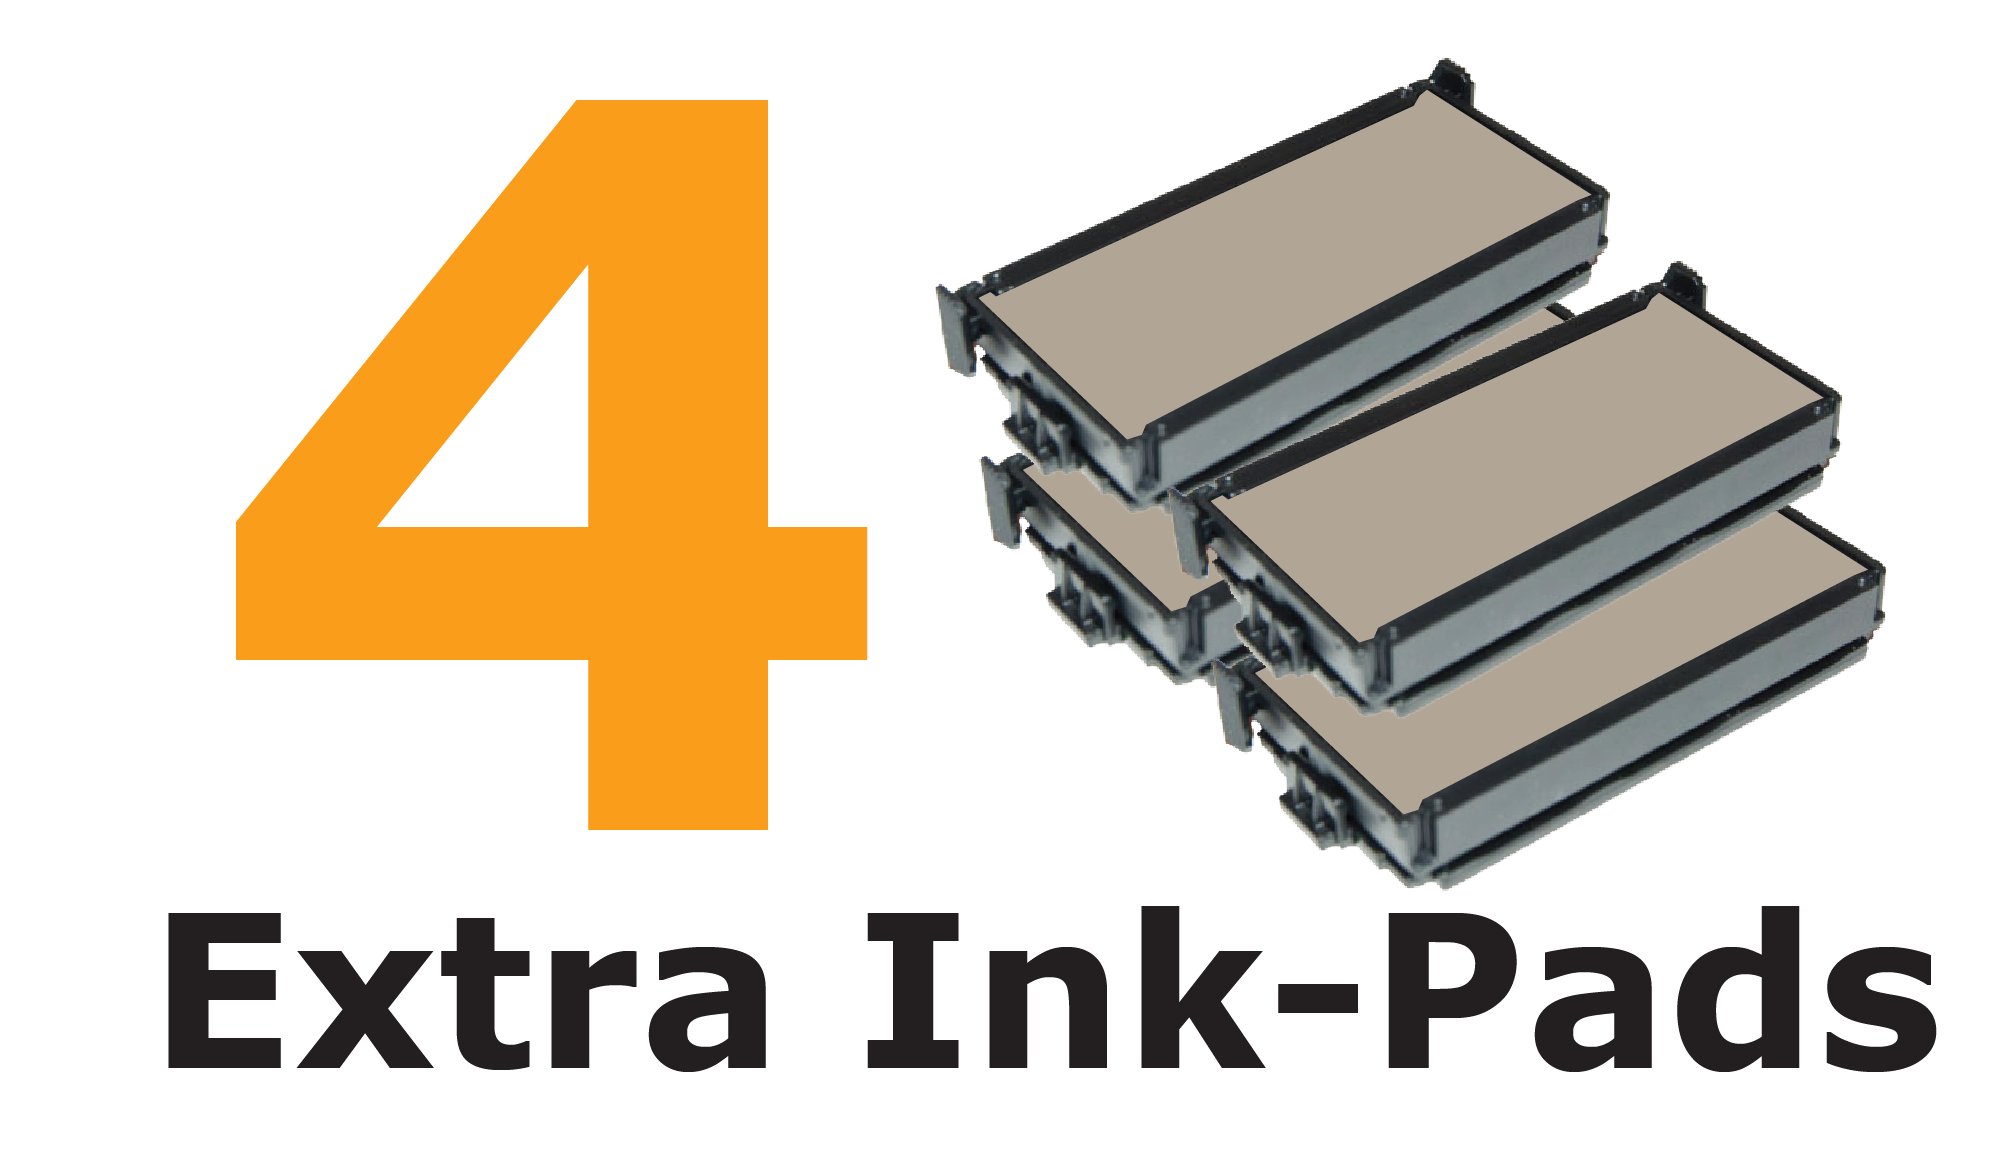 FOUR extra ink-pads